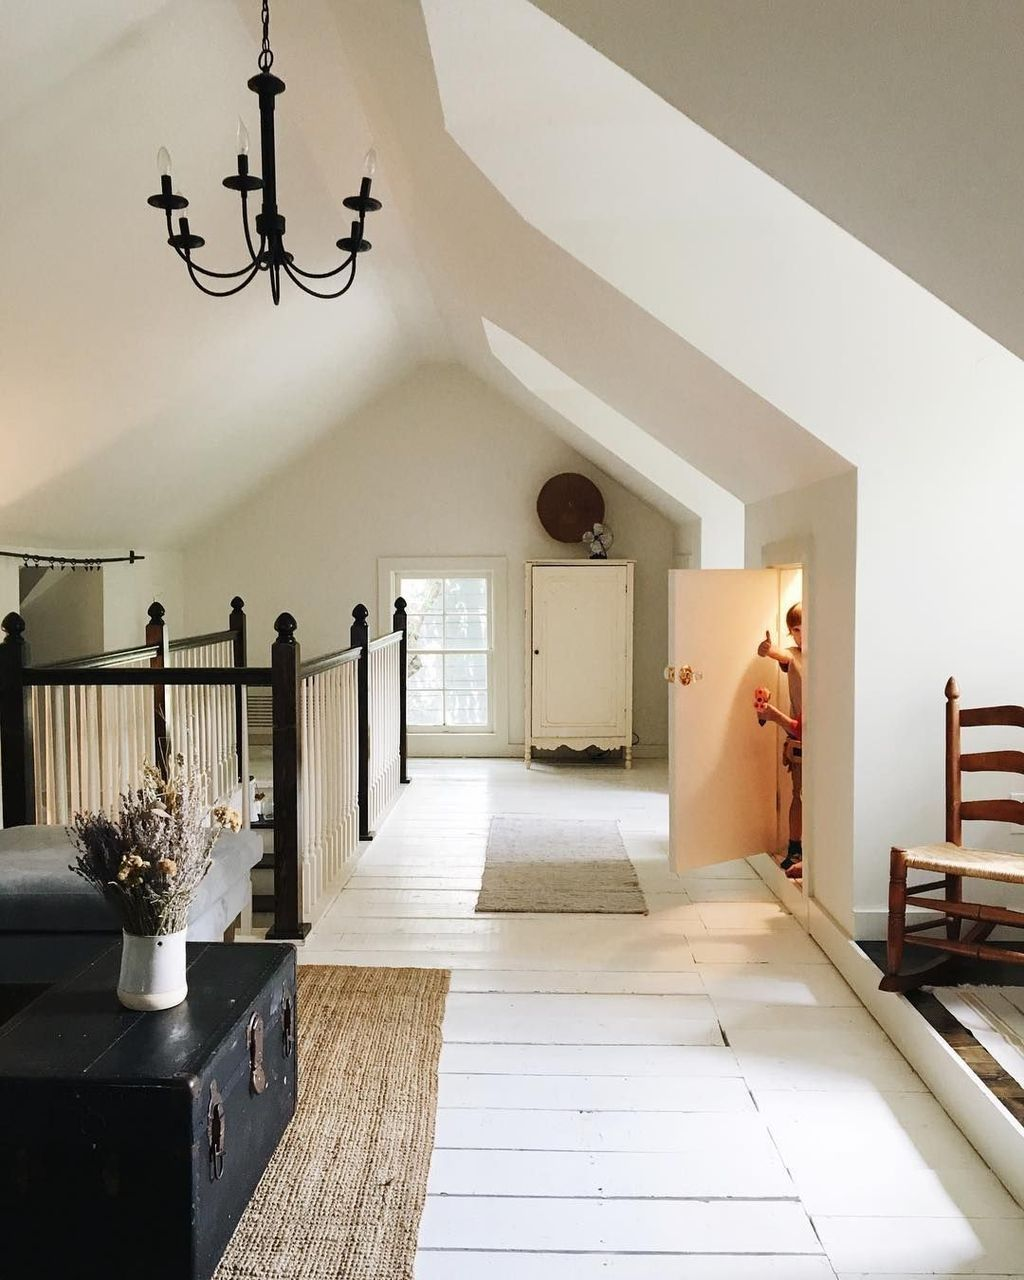 These Are The Attic Design Ideas You Have Been Looking For In 2020 Attic Rooms Attic Design Attic Remodel